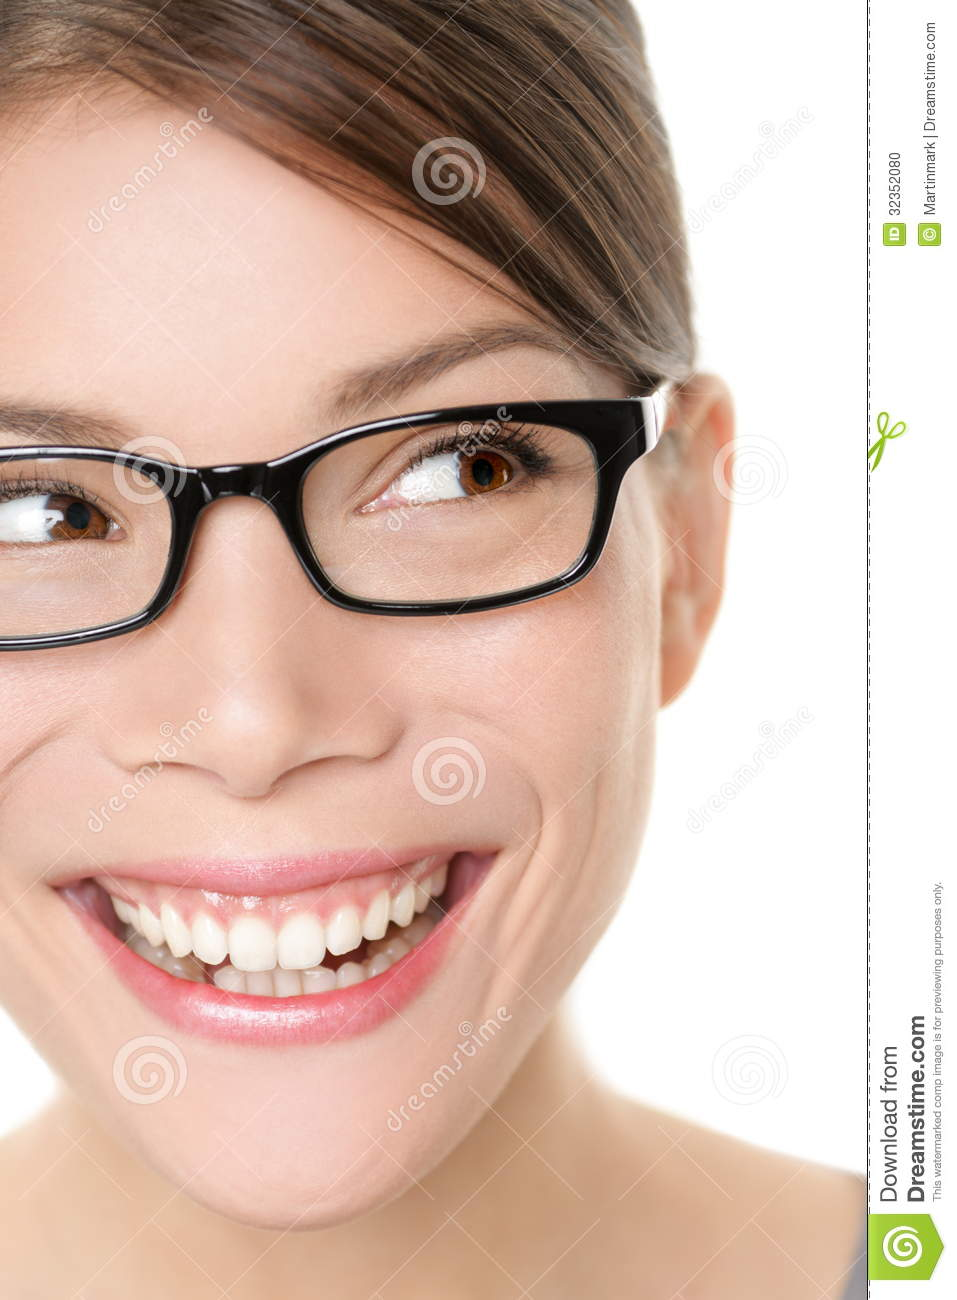 glasses-eyewear-spectacles-woman-looking-happy-to-side-big-smile-wearing-eyeglasses-close-up-portrait-female-model-face-32352080.jpg